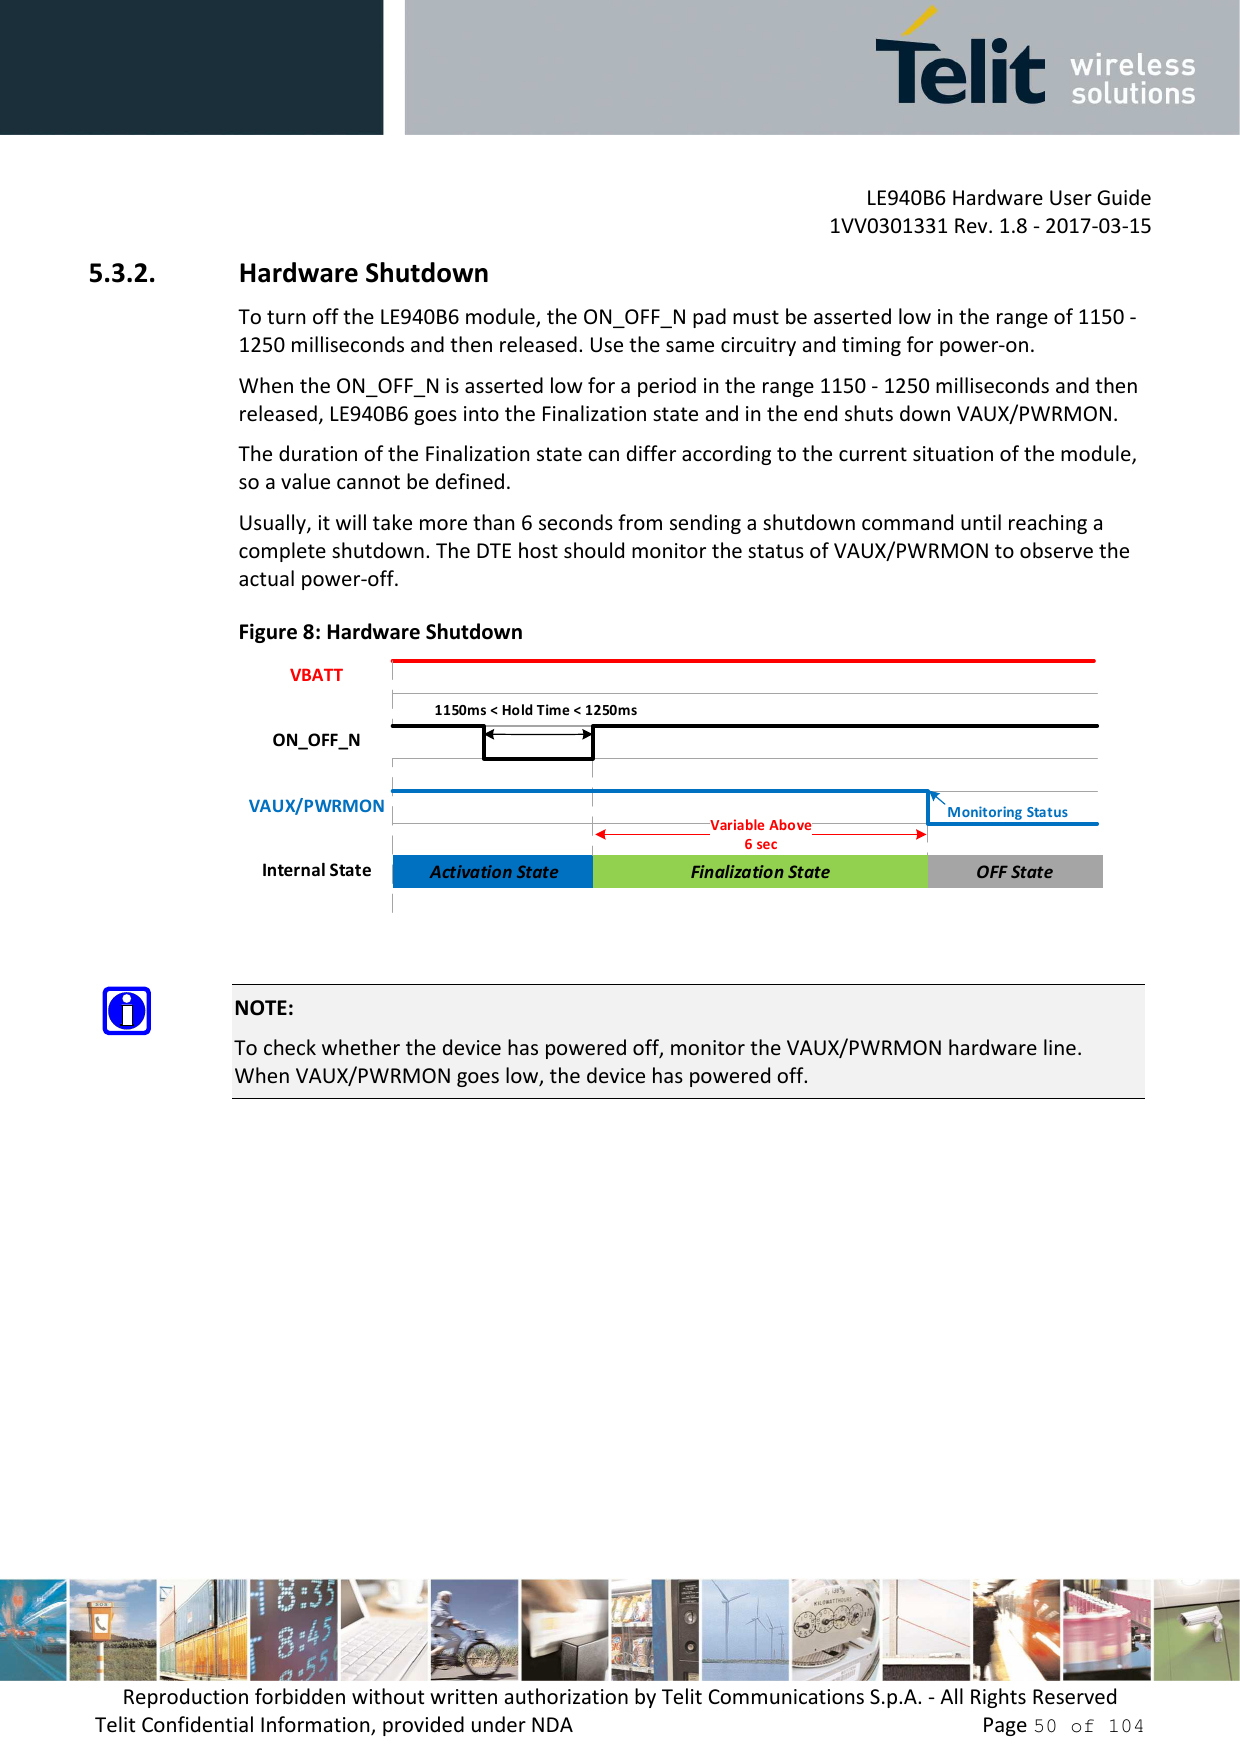 LE940B6 Hardware User Guide     1VV0301331 Rev. 1.8 - 2017-03-15 Reproduction forbidden without written authorization by Telit Communications S.p.A. - All Rights Reserved Telit Confidential Information, provided under NDA                 Page 50 of 104 5.3.2. Hardware Shutdown To turn off the LE940B6 module, the ON_OFF_N pad must be asserted low in the range of 1150 - 1250 milliseconds and then released. Use the same circuitry and timing for power-on. When the ON_OFF_N is asserted low for a period in the range 1150 - 1250 milliseconds and then released, LE940B6 goes into the Finalization state and in the end shuts down VAUX/PWRMON. The duration of the Finalization state can differ according to the current situation of the module, so a value cannot be defined. Usually, it will take more than 6 seconds from sending a shutdown command until reaching a complete shutdown. The DTE host should monitor the status of VAUX/PWRMON to observe the actual power-off. Figure 8: Hardware Shutdown OFF StateInternal StateVAUX/PWRMONVBATTActivation StateVariable Above6 secMonitoring StatusON_OFF_N1150ms < Hold Time < 1250msFinalization State   NOTE: To check whether the device has powered off, monitor the VAUX/PWRMON hardware line. When VAUX/PWRMON goes low, the device has powered off.